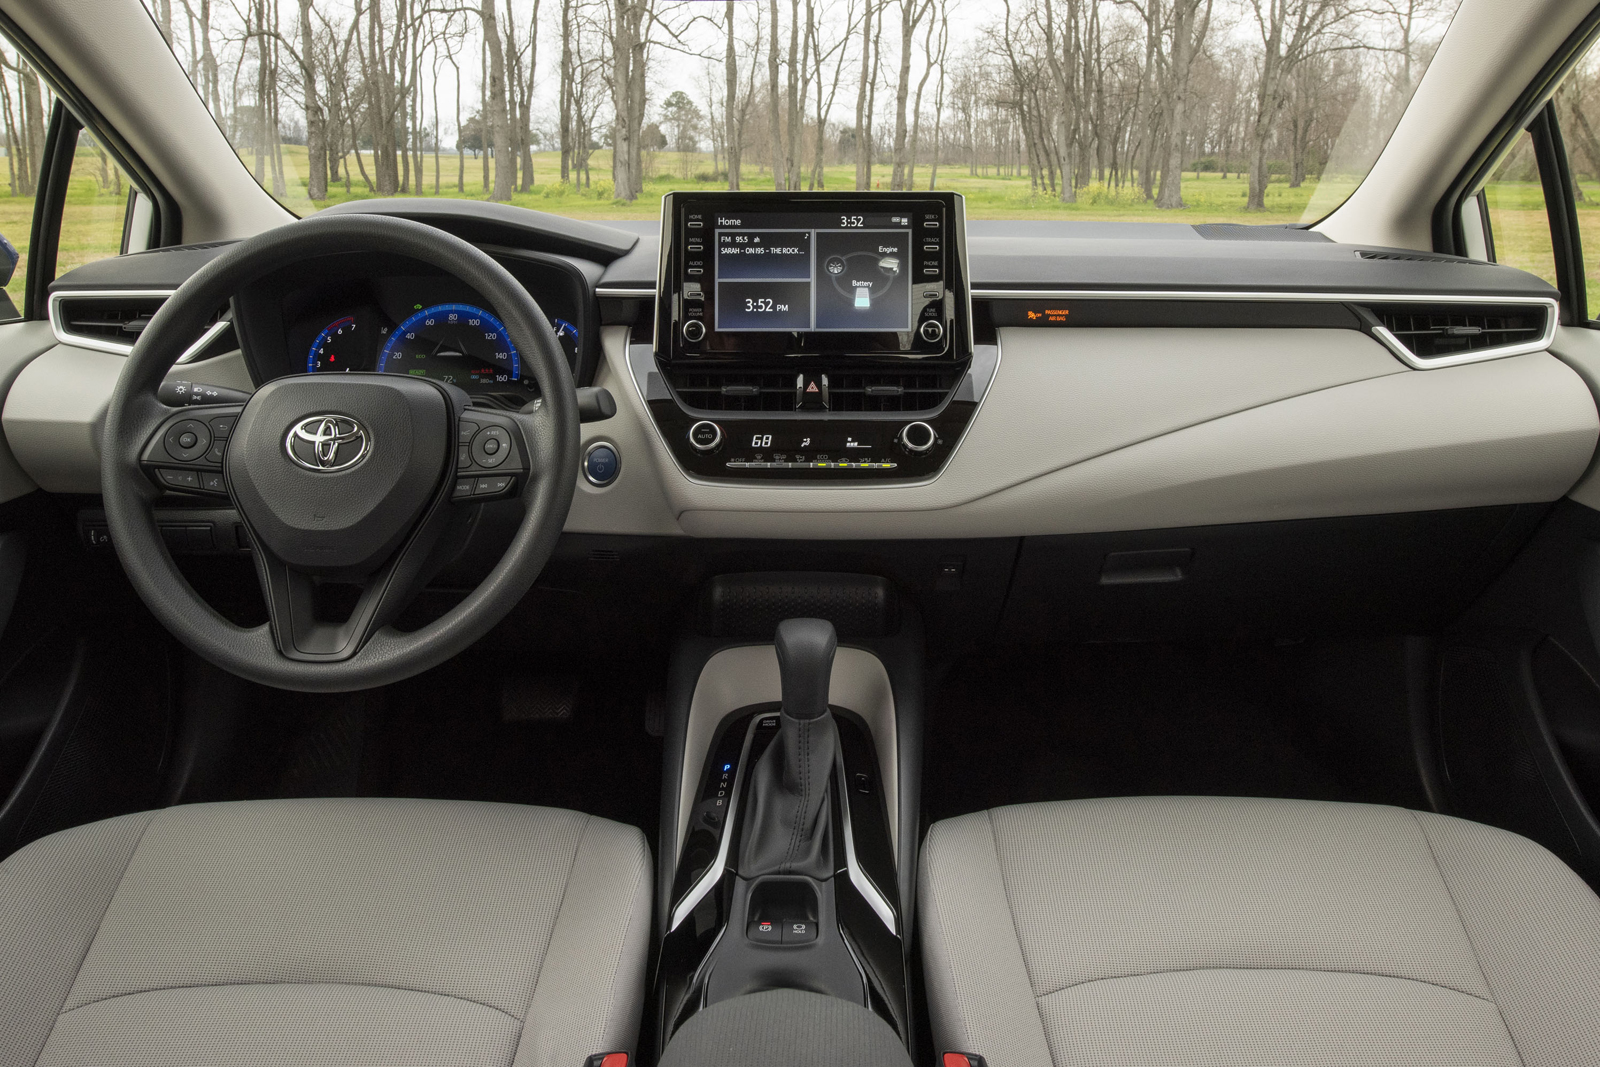 2021 toyota corolla hybrid now on sale in canada  motor